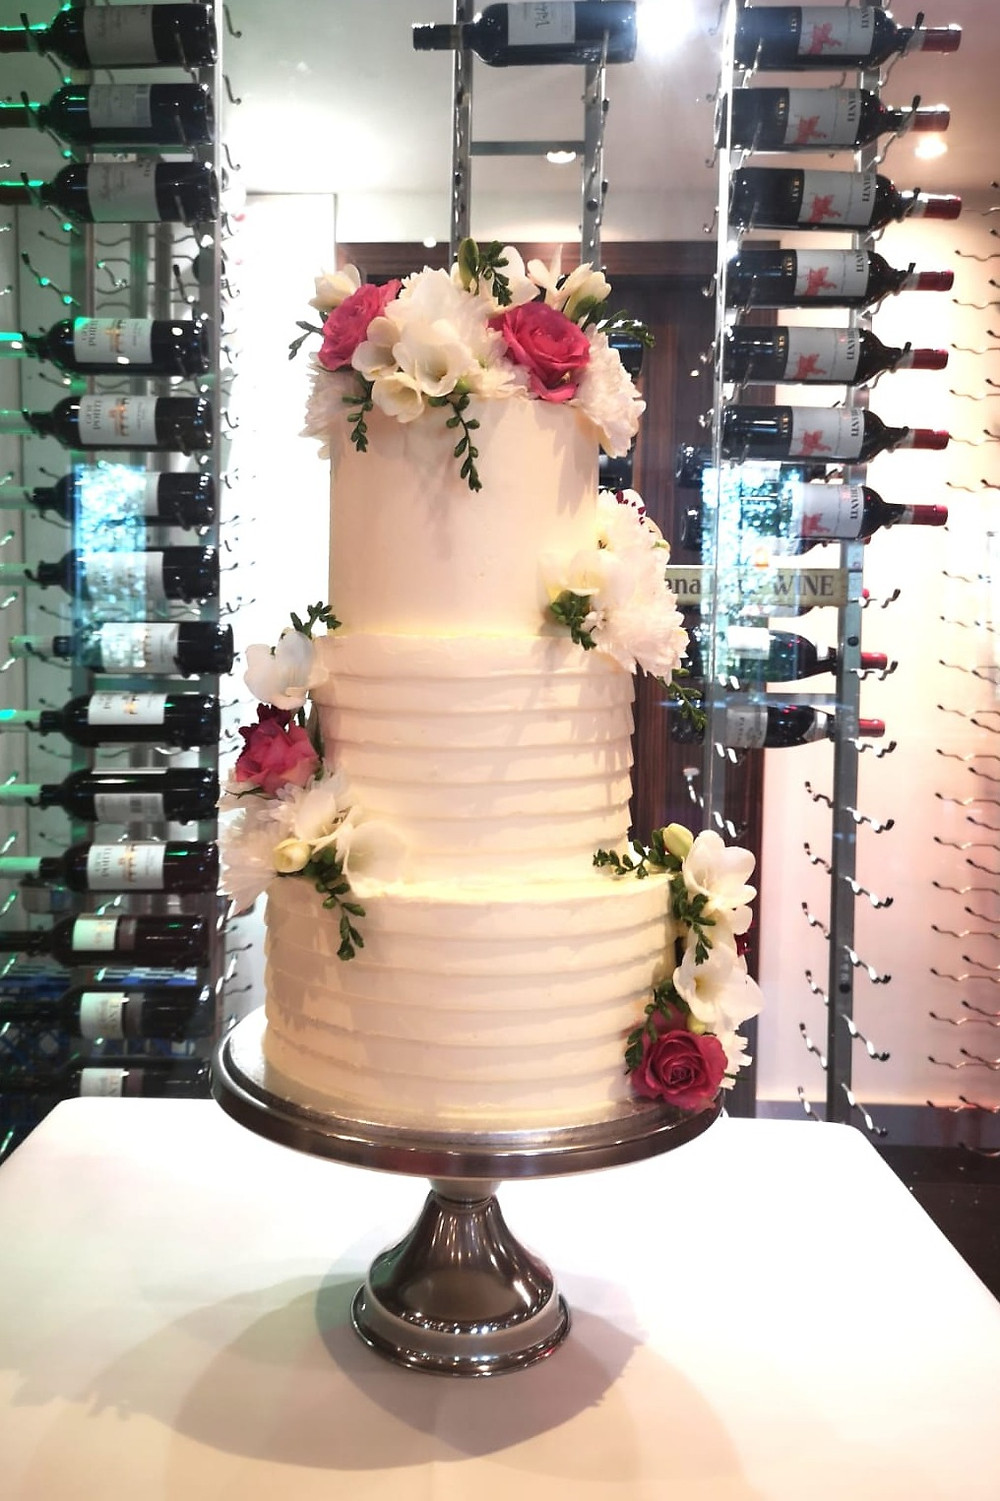 A Tall Wedding Cake for a Small Wedding but the rest of the cake can be frozen for later